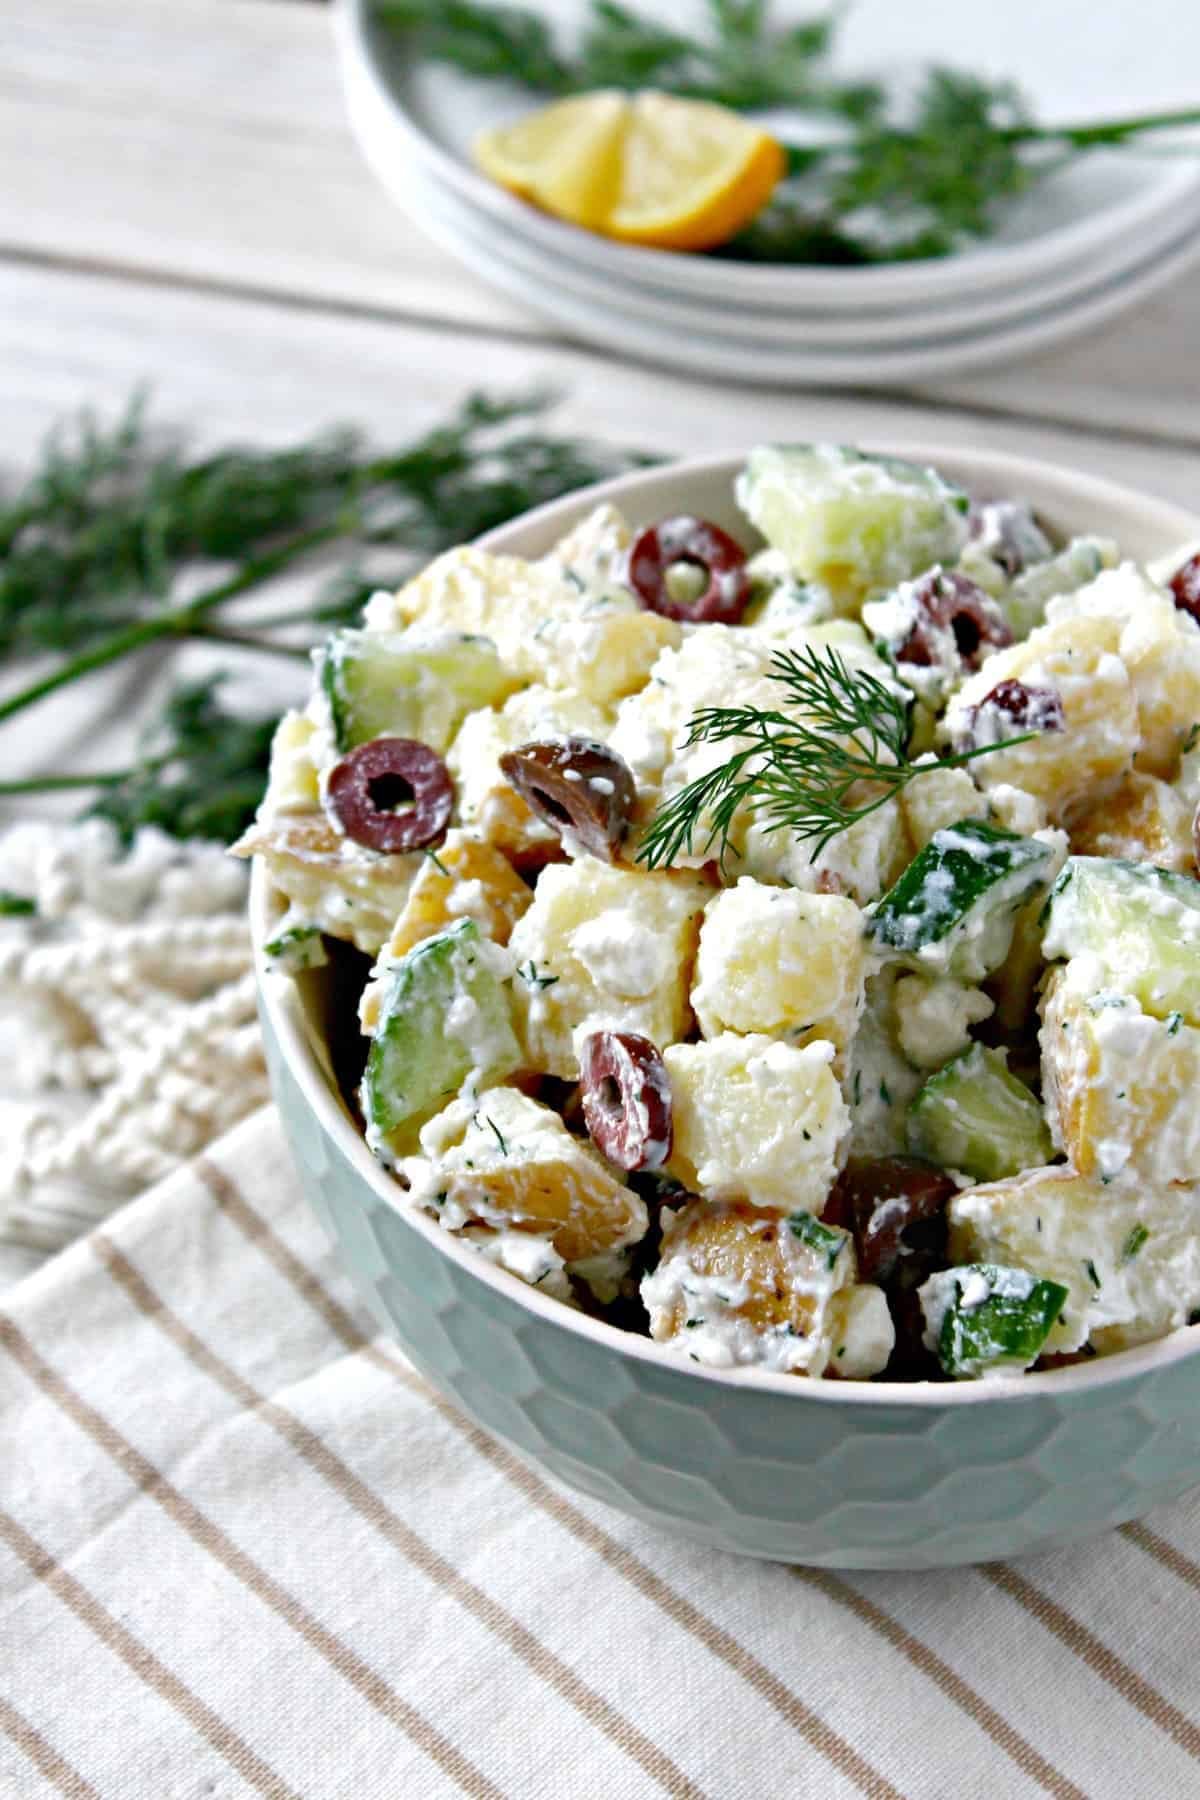 Tzatziki Potato Salad with Kalamata Olives! A fresh, lighter take on a summer favorite, this potato salad features flavors found in tzatziki, a Mediterranean yogurt-based sauce that's often served as a dip or in accompaniment to grilled meats. Salty Kalamata olives and feta cheese give the classic summertime side dish a new spin that will keep everyone coming back for more.